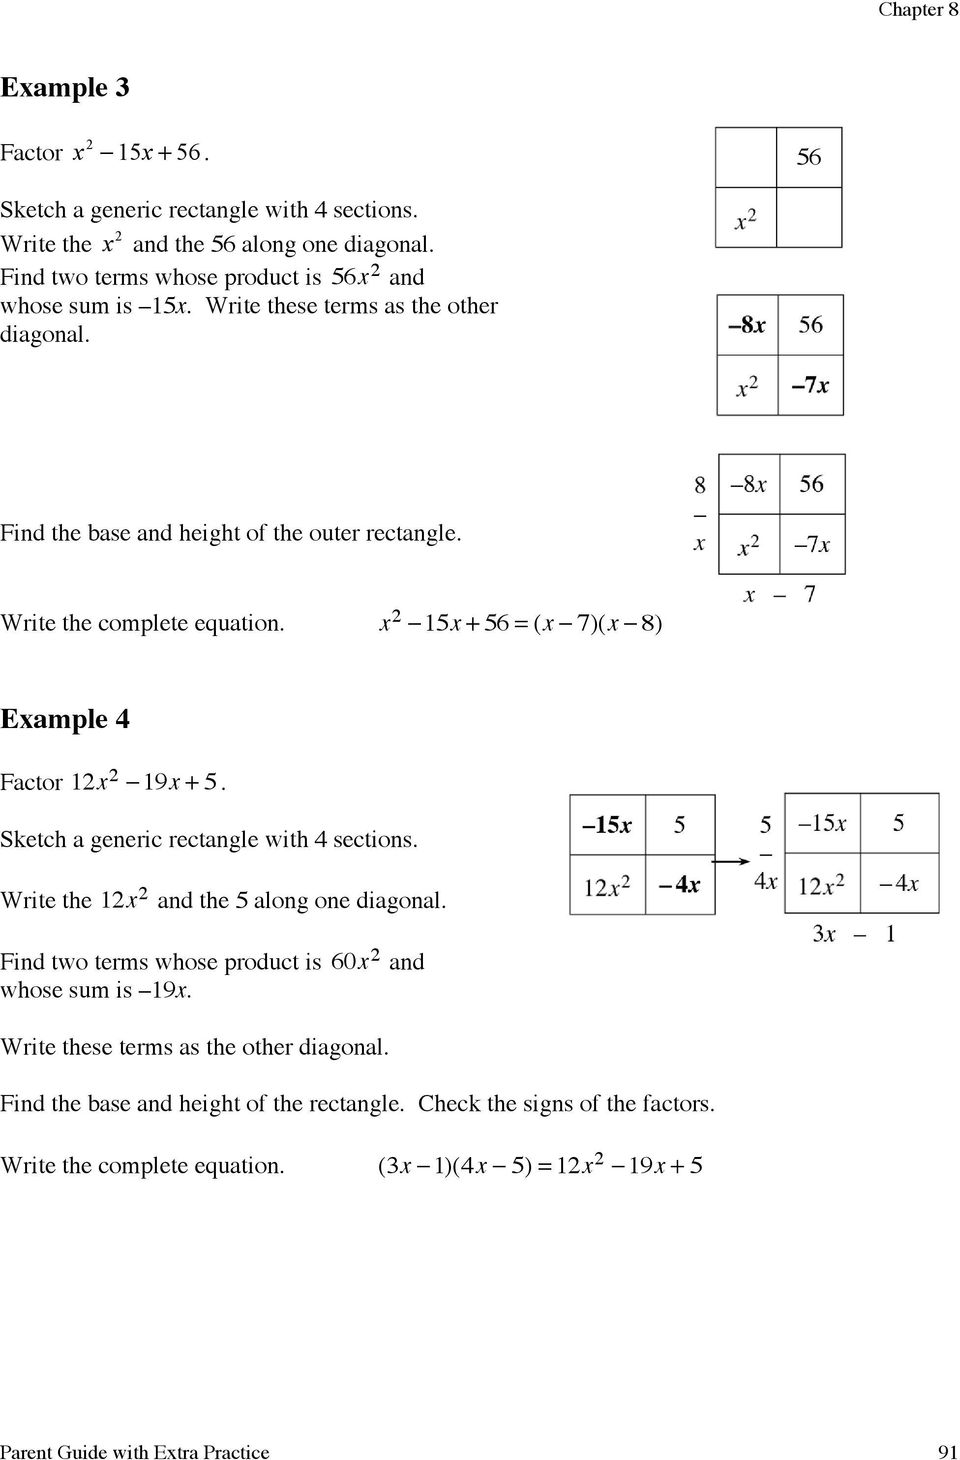 Factoring Quadratics Through Pdf